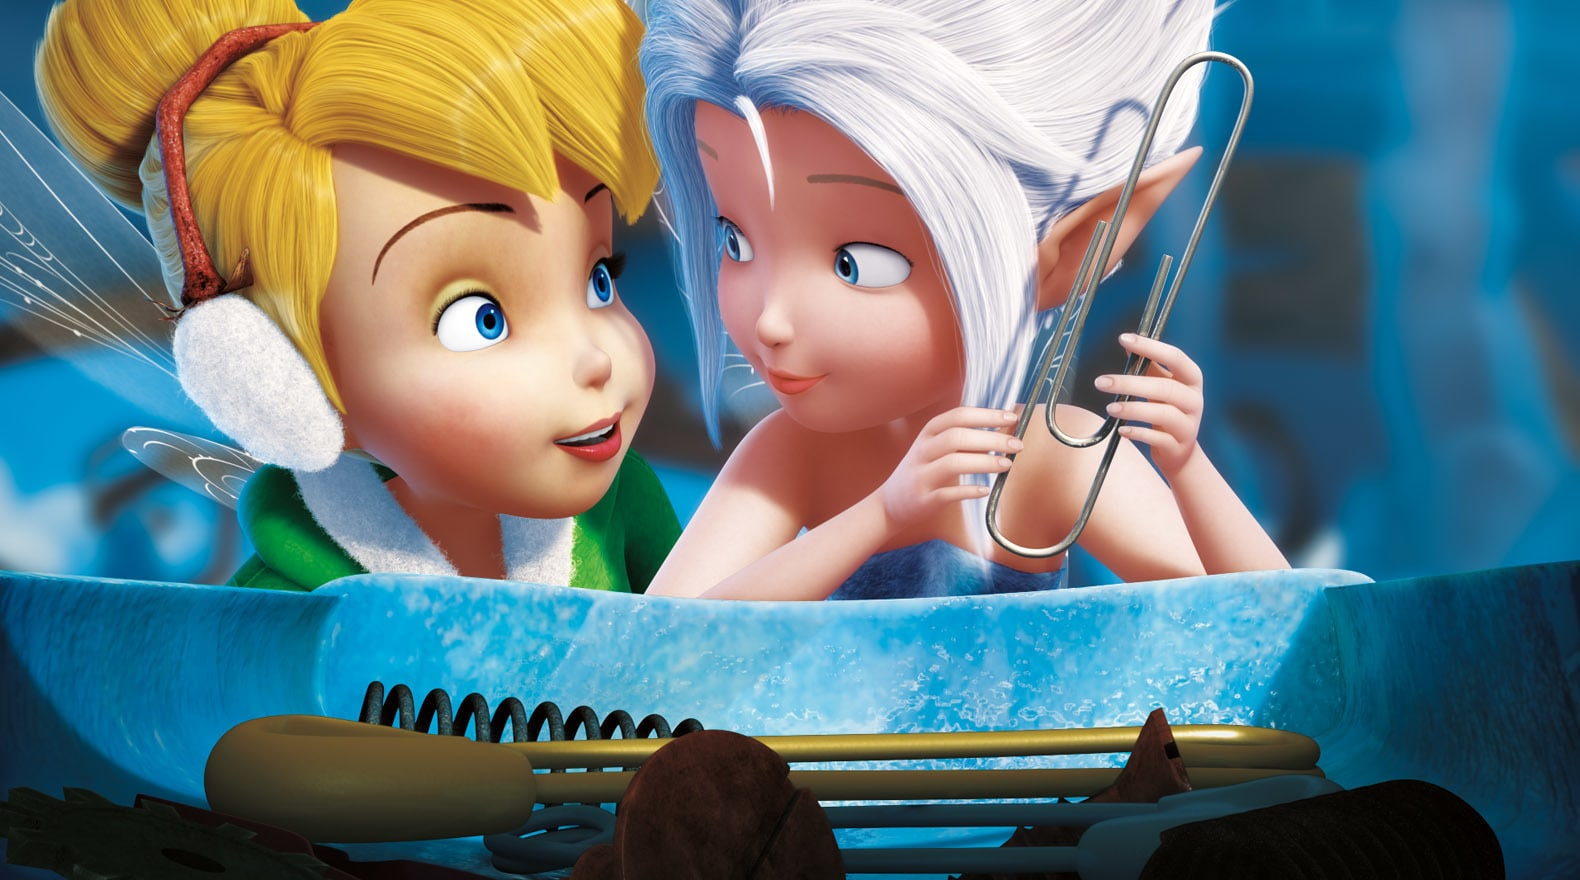 Tinker Bell and her sister Peri both love collecting lost (or found) things.